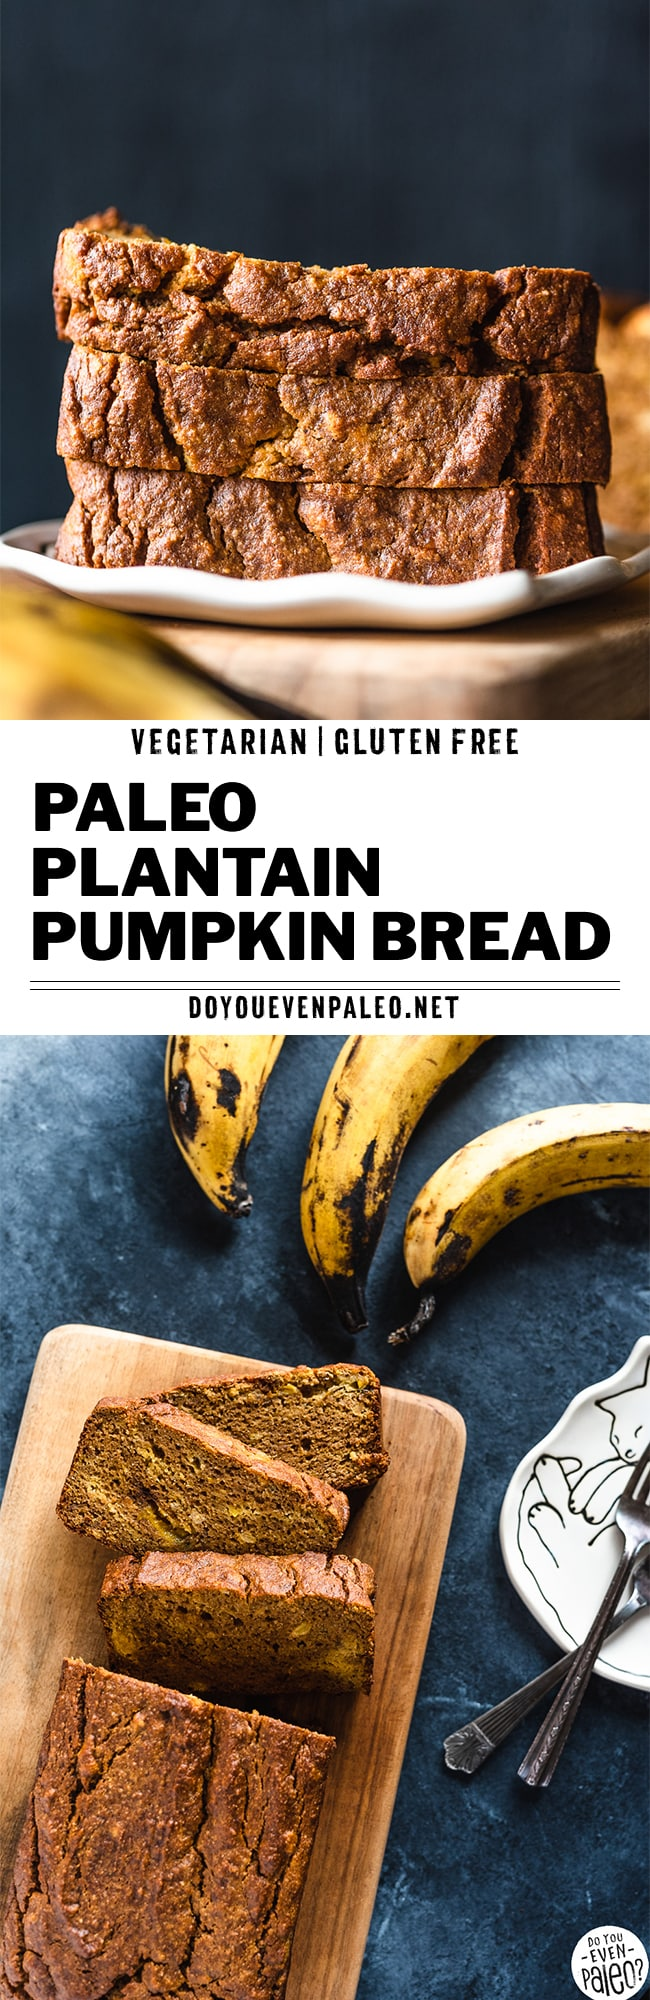 Paleo Plantain Pumpkin Bread Recipe - slices stacked on a plate with the text overlay 'paleo plantain pumpkin bread' by DoYouEvenPaleo.net